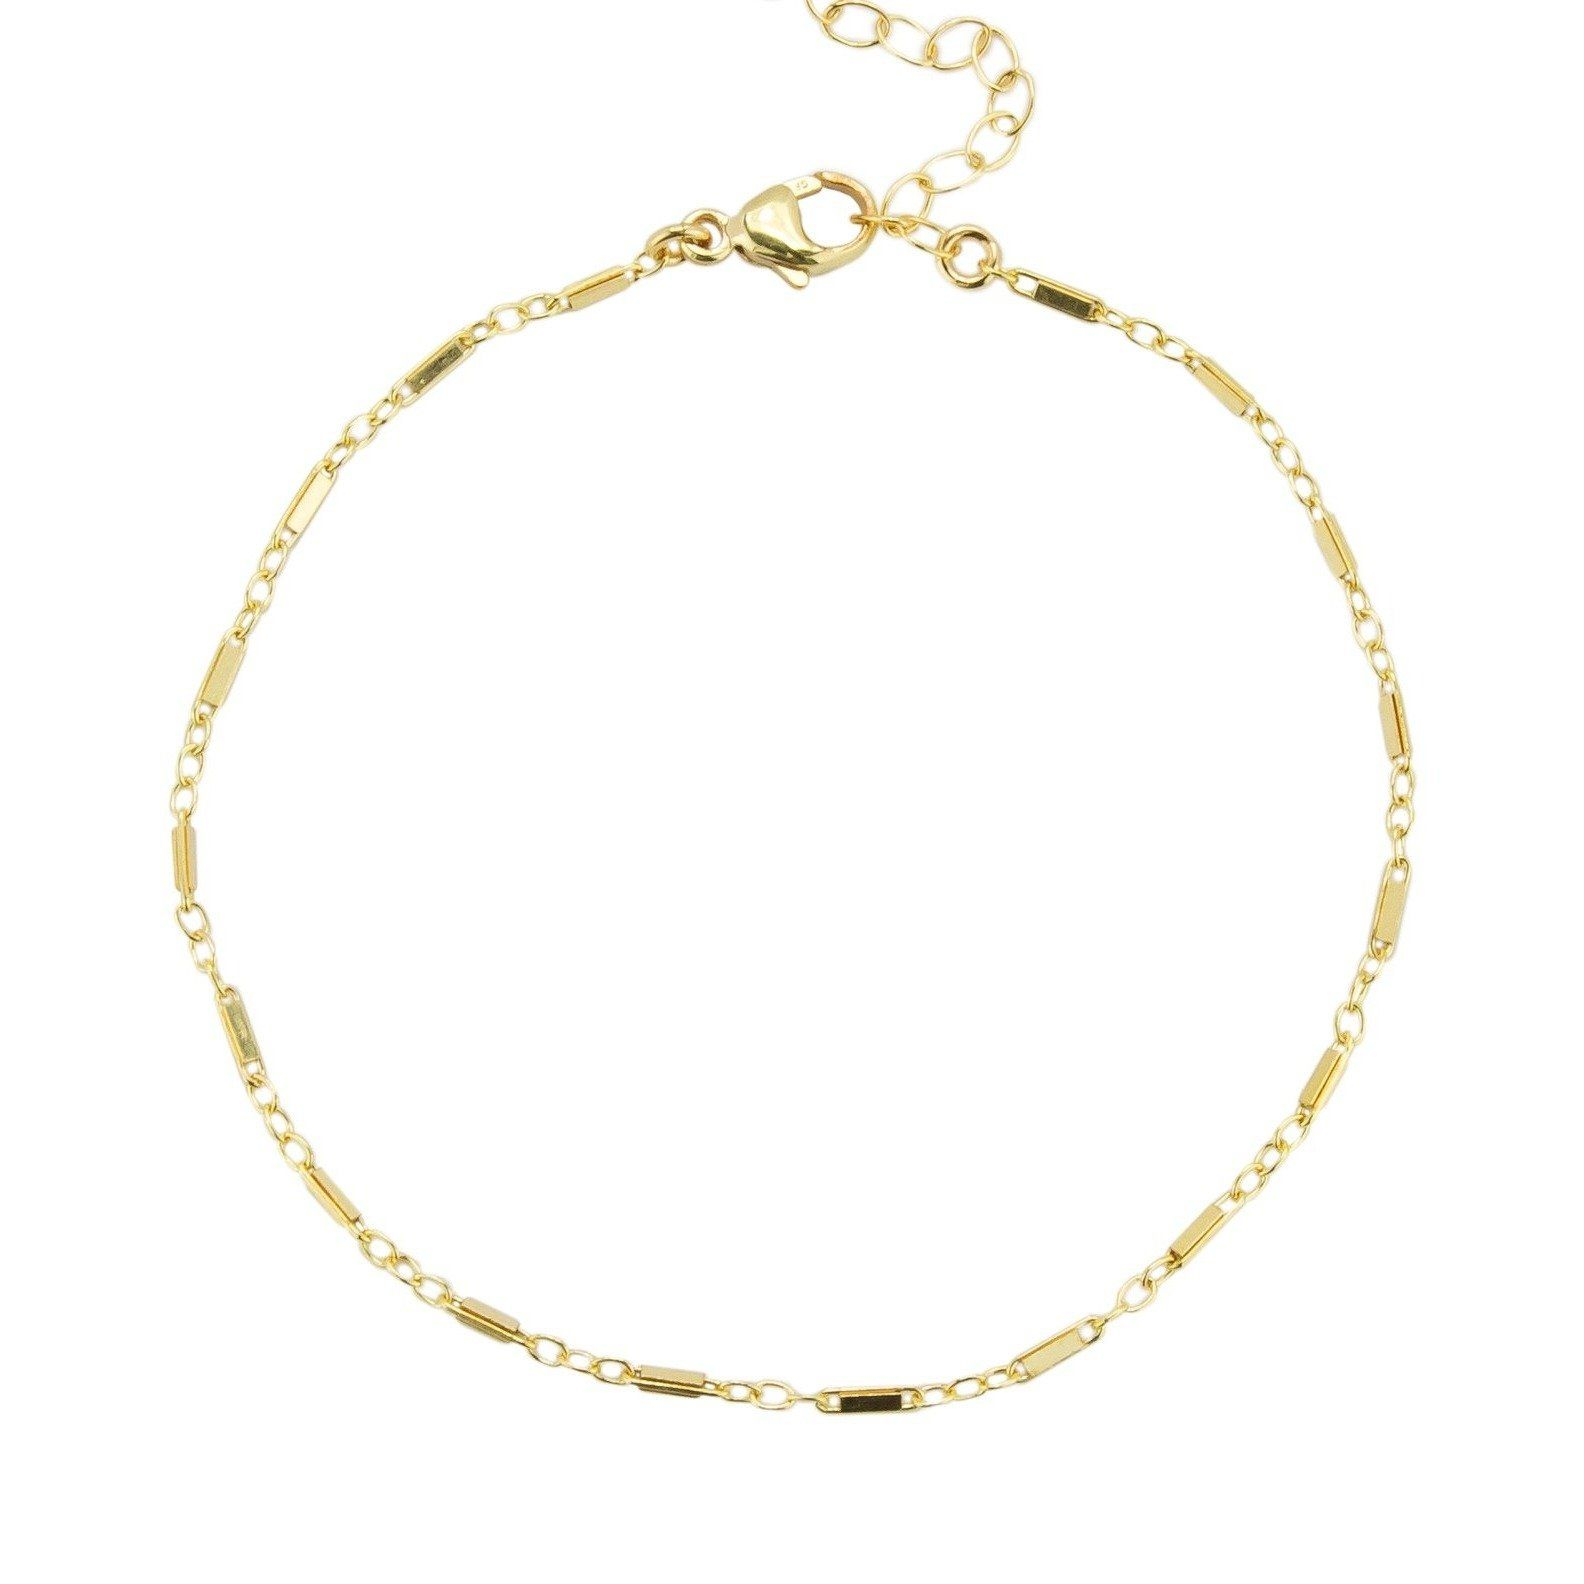 Dainty, handmade Linked Anklet by Katie Dean Jewelry. Perfect for Summer!